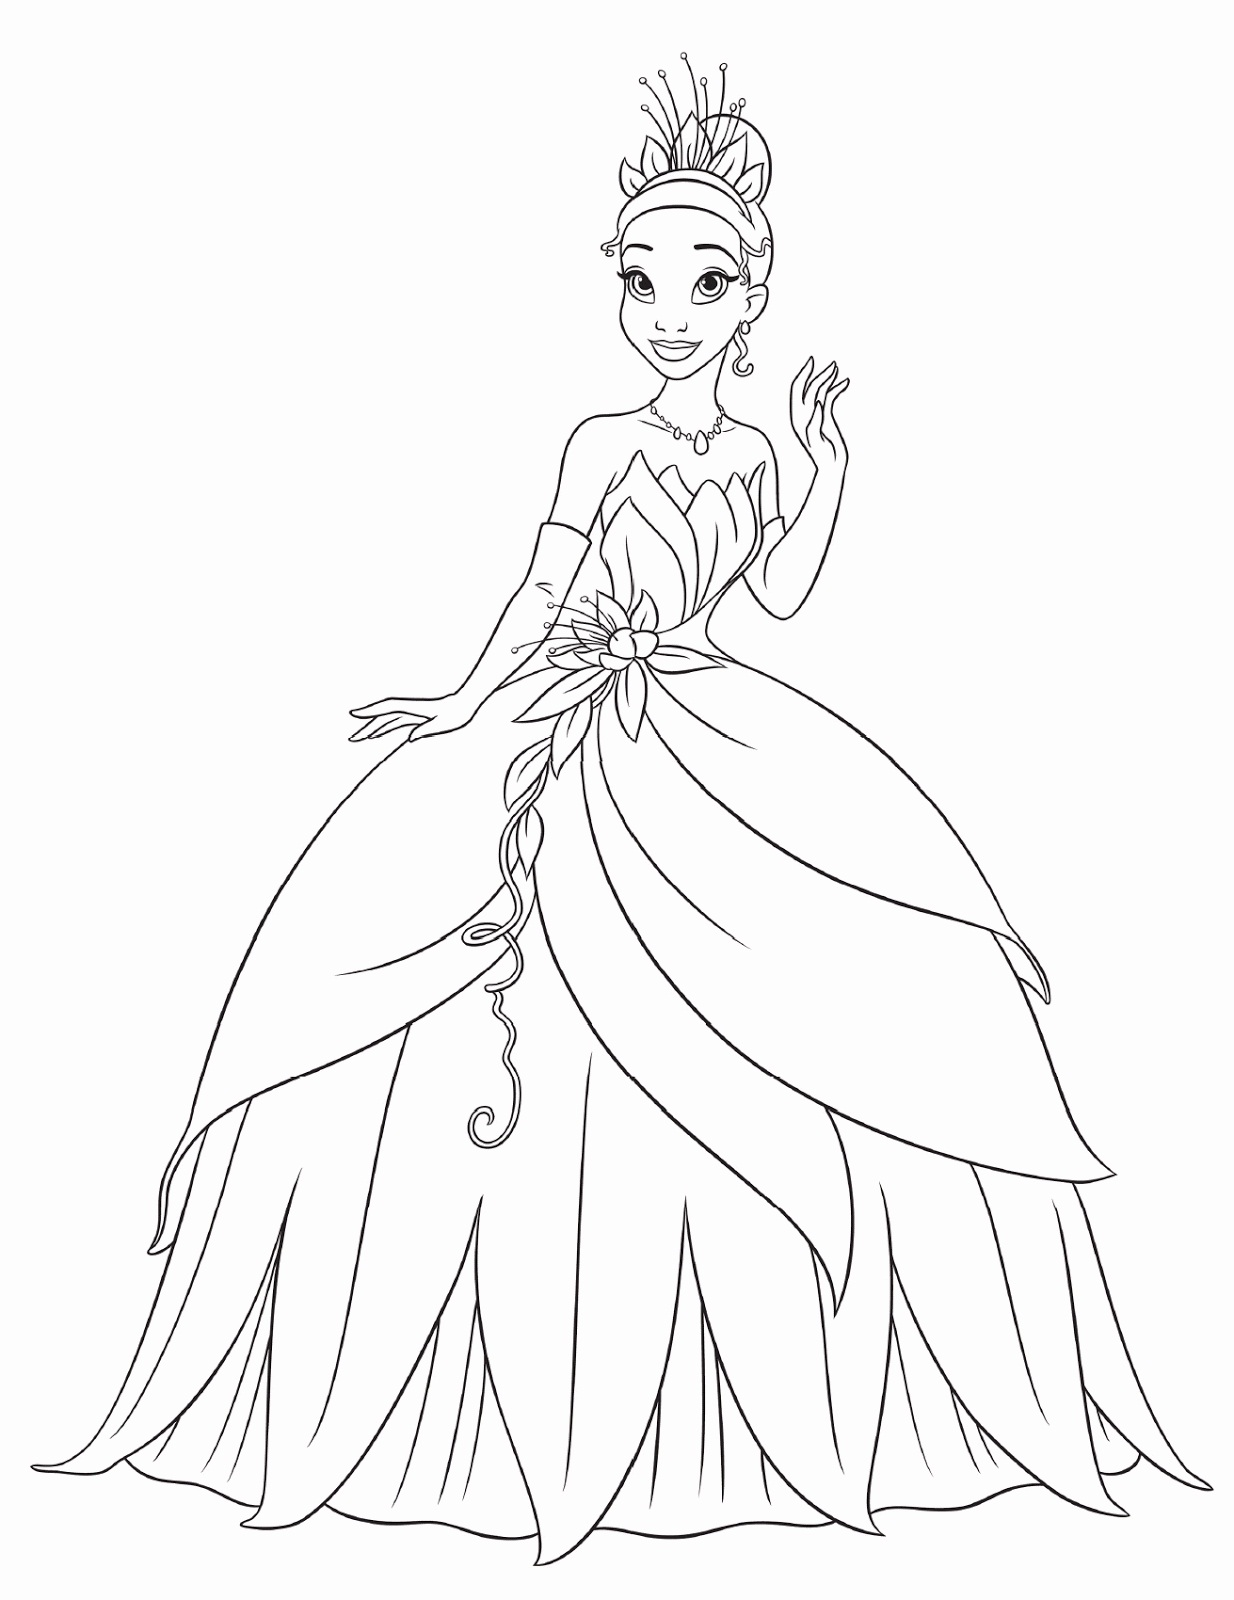 Free printable princess tiana coloring pages for kids for Princess printable color pages